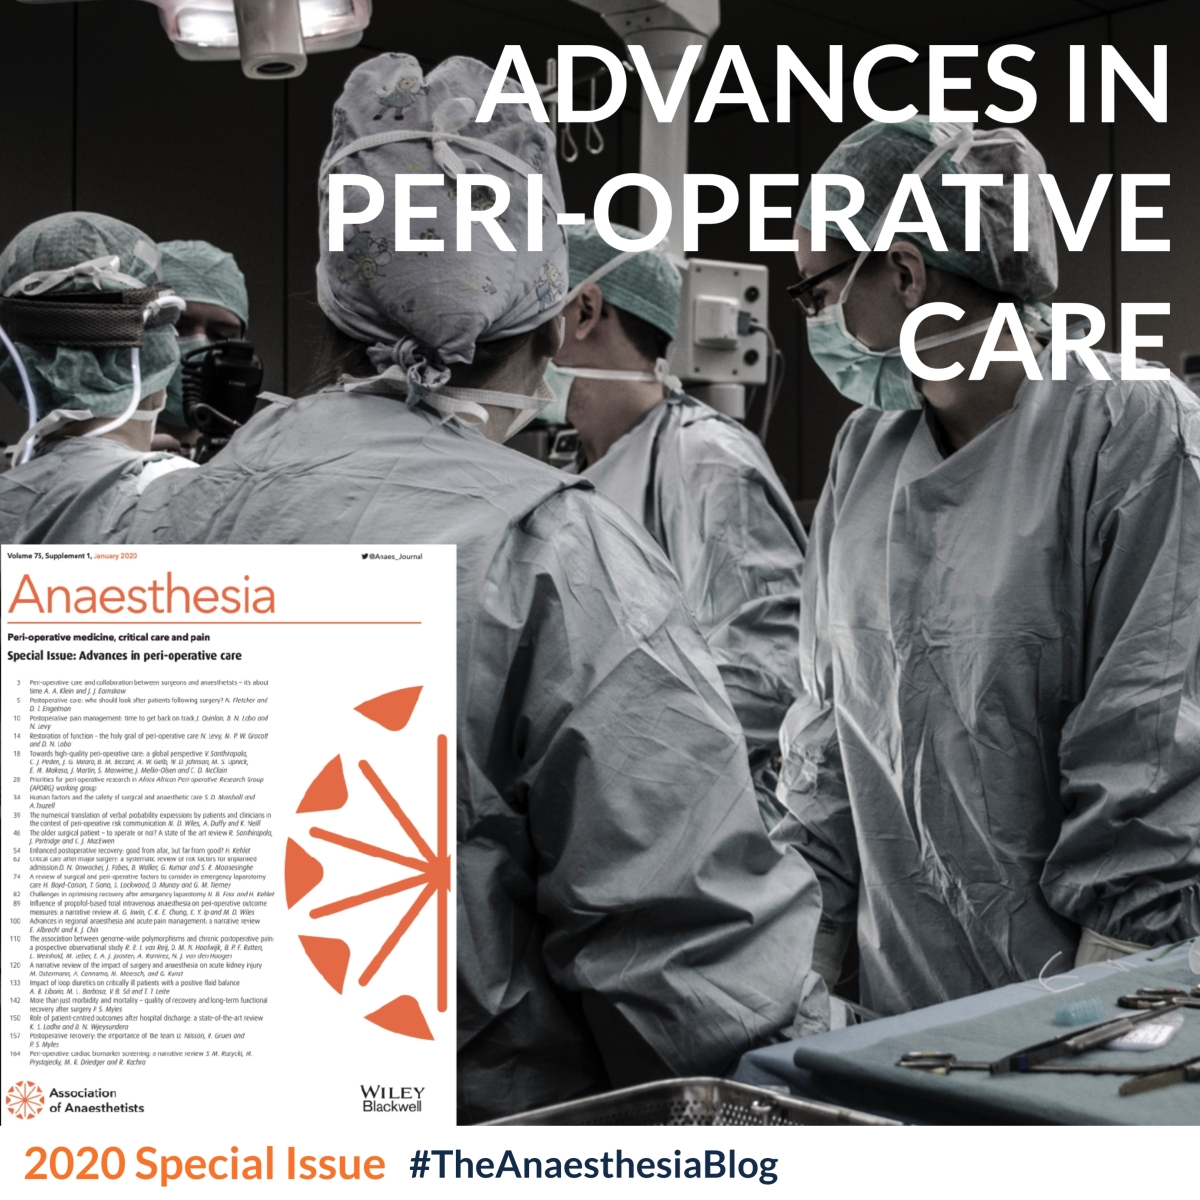 Advances in peri-operative care